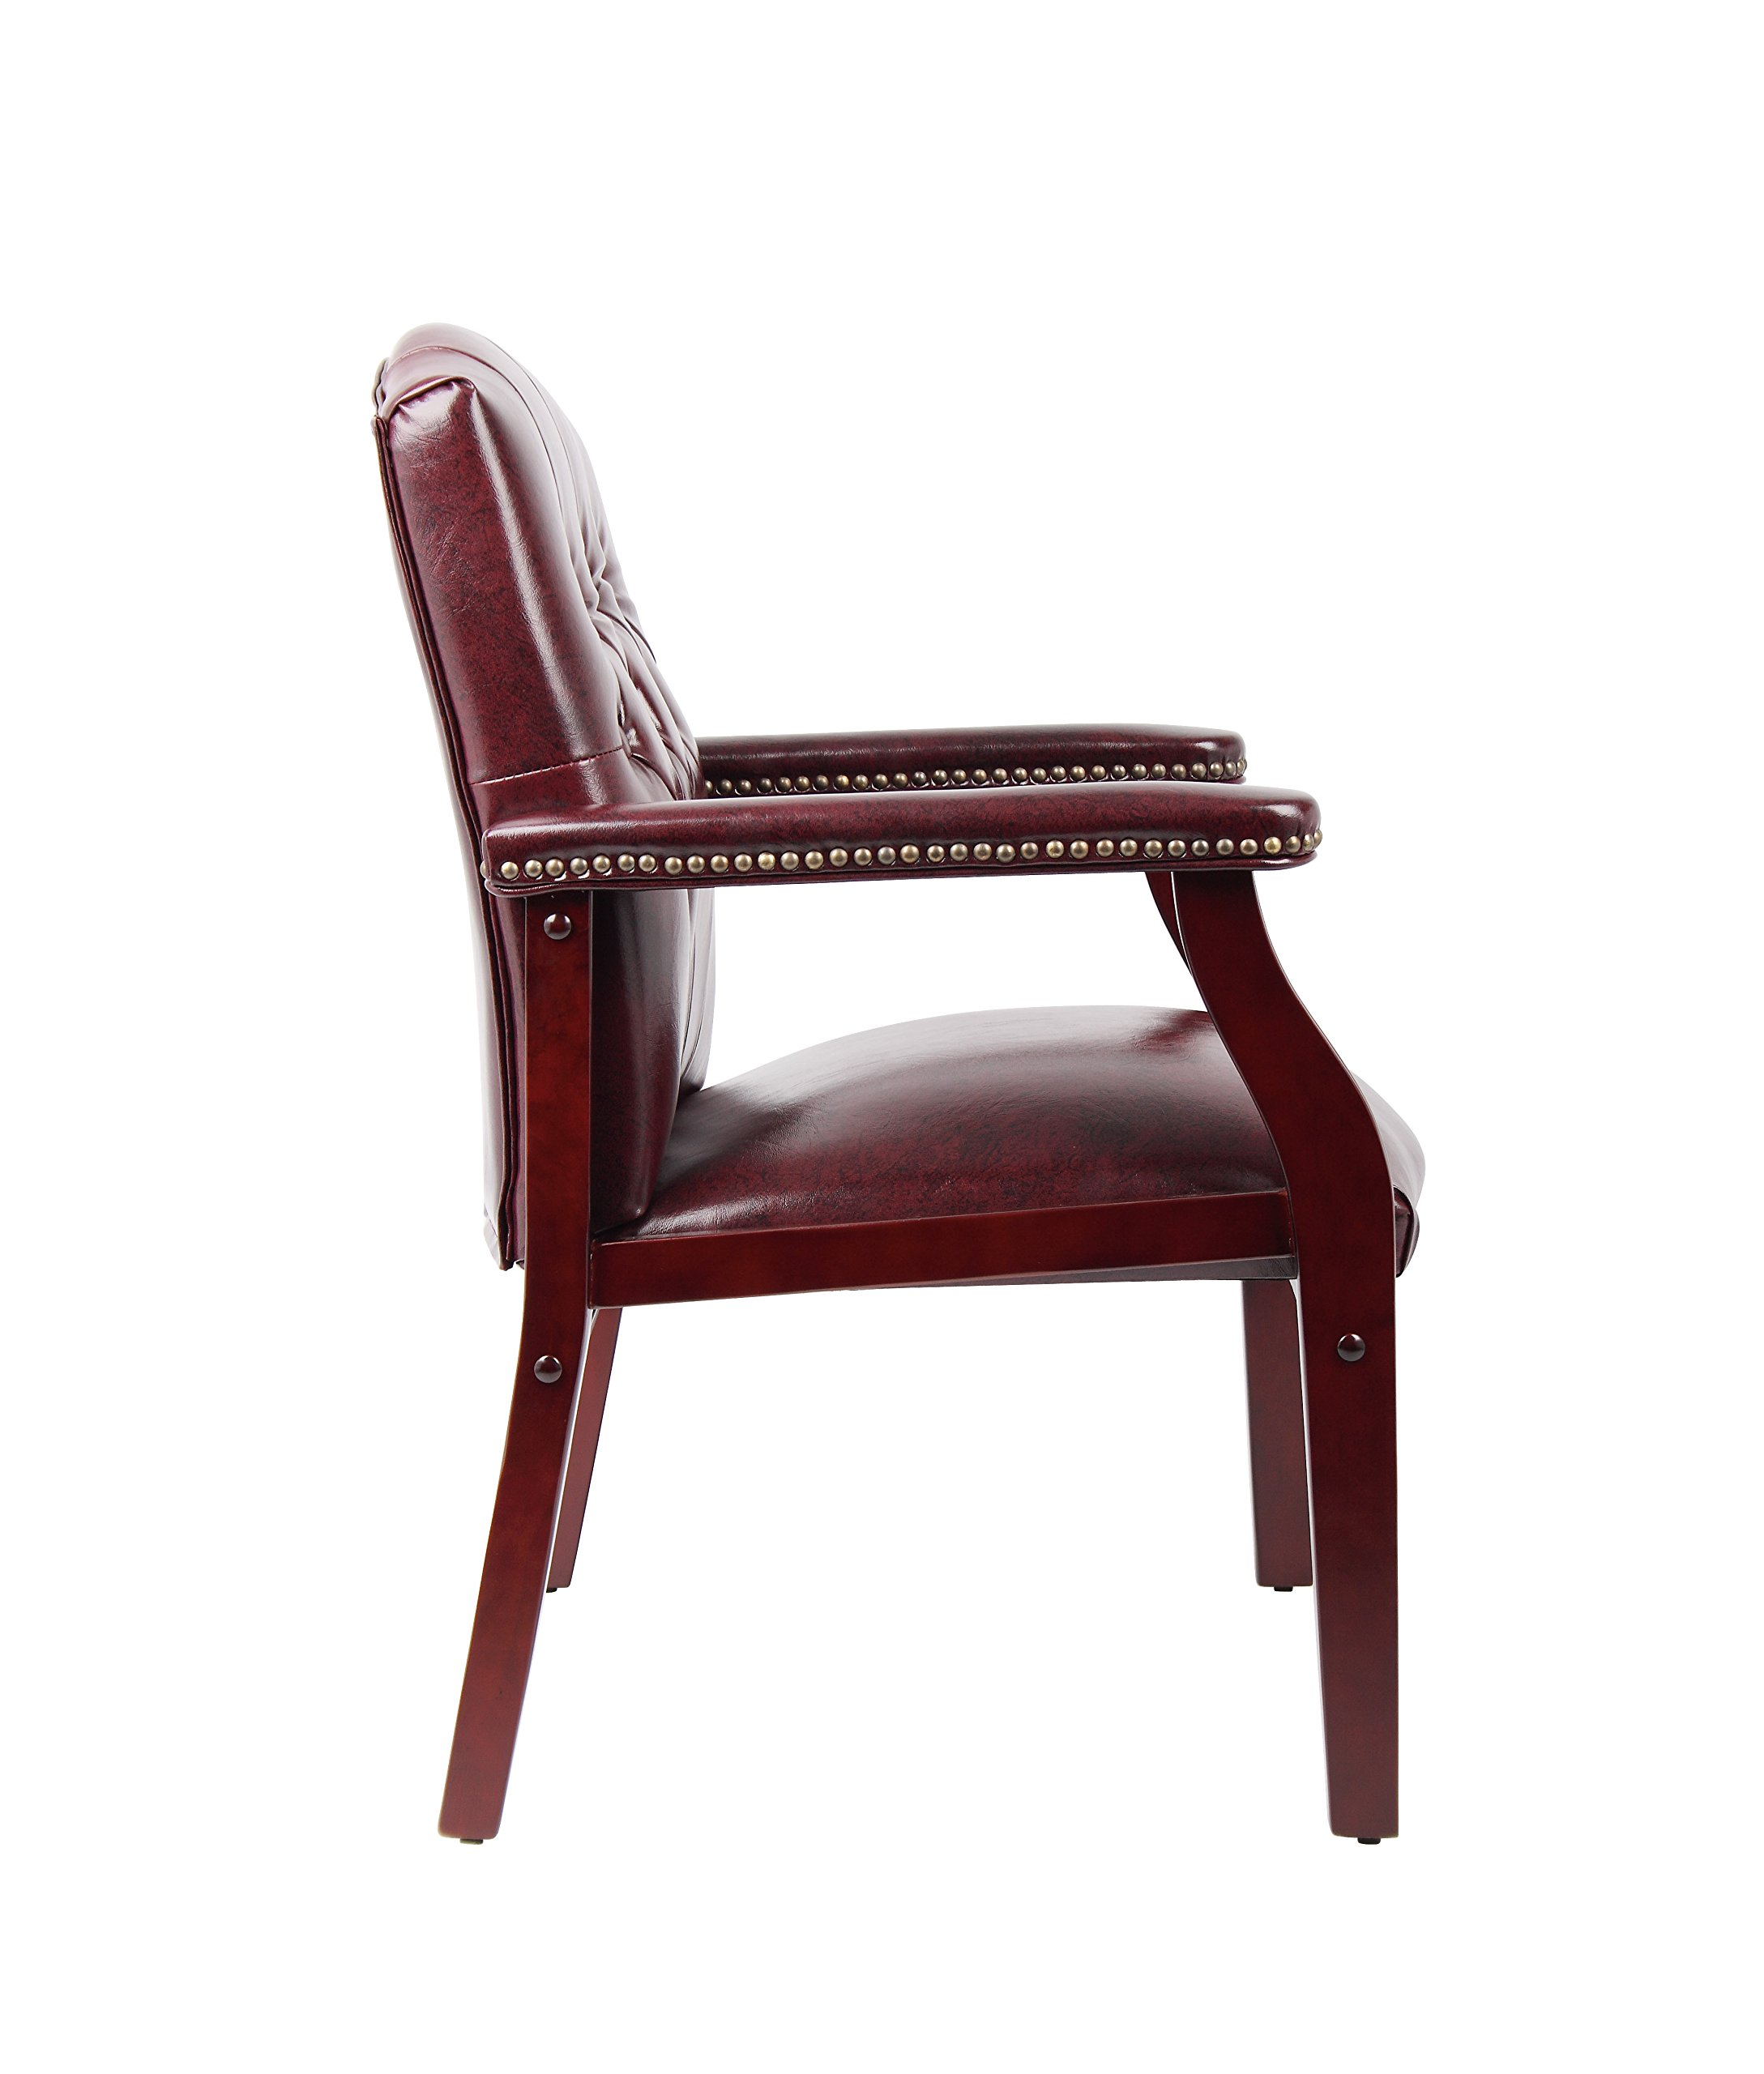 Boss Office Products B959-BY Ivy League Executive Guest Chair in Burgundy by Boss Office Products (Image #6)